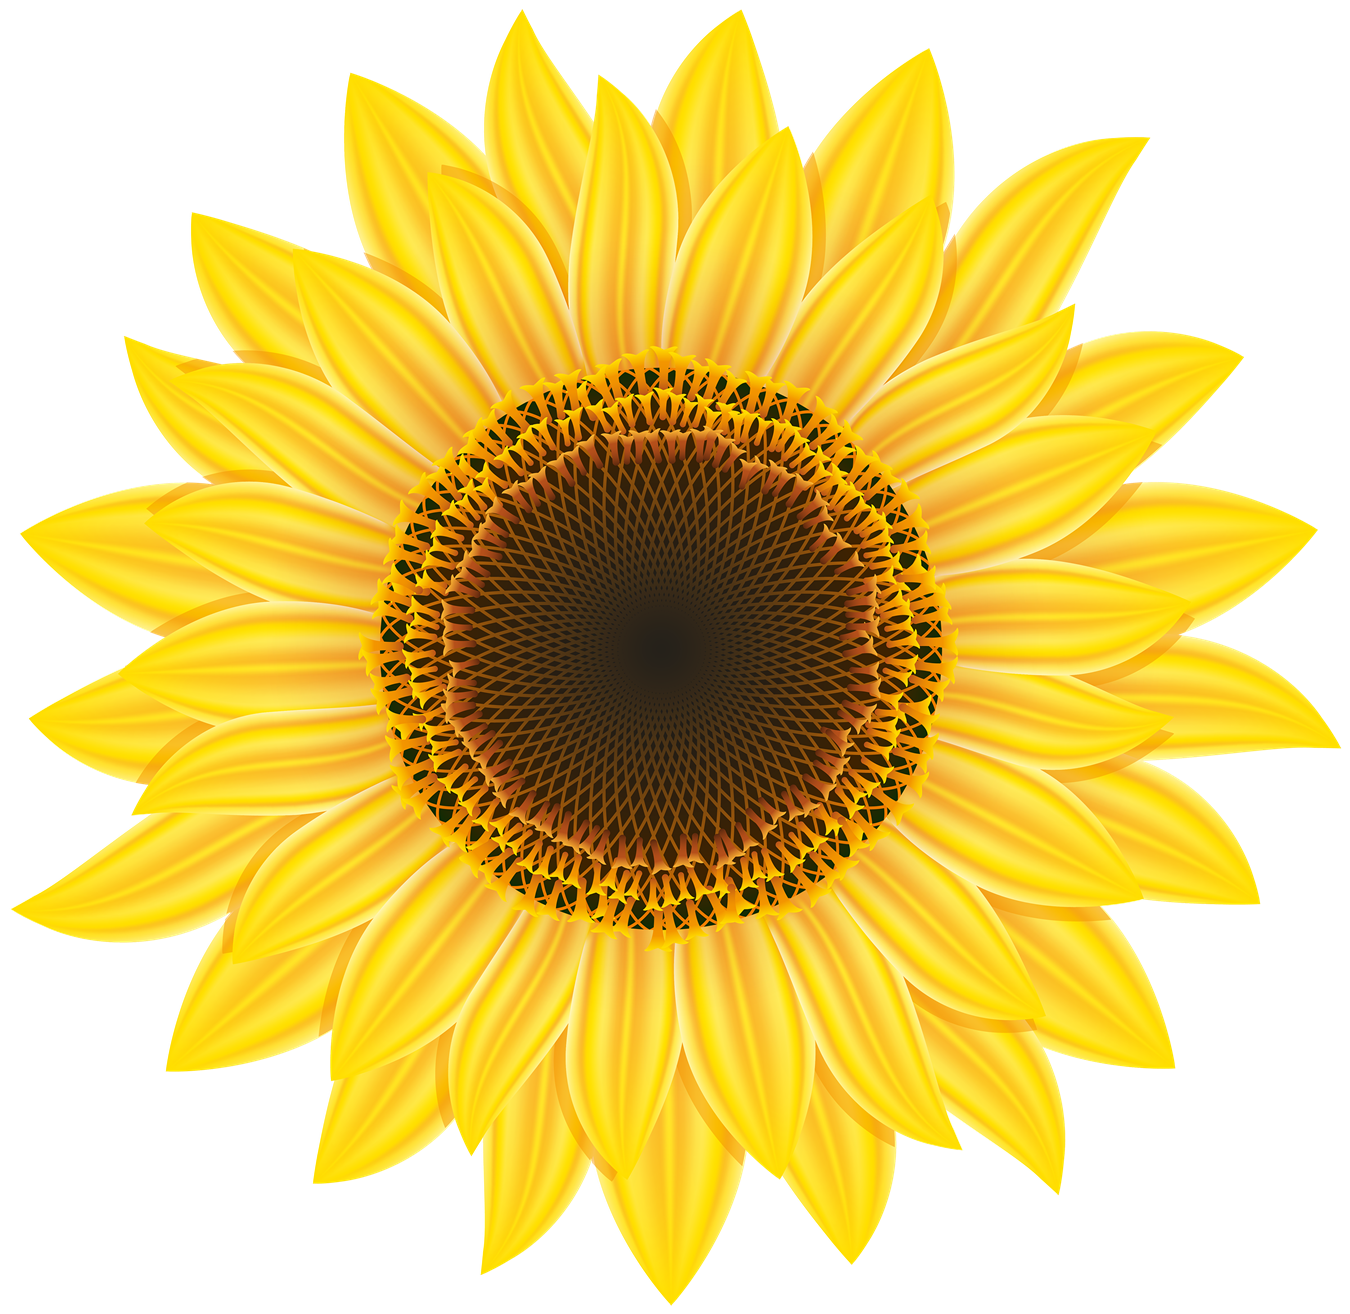 Sunflower Image PNG Image